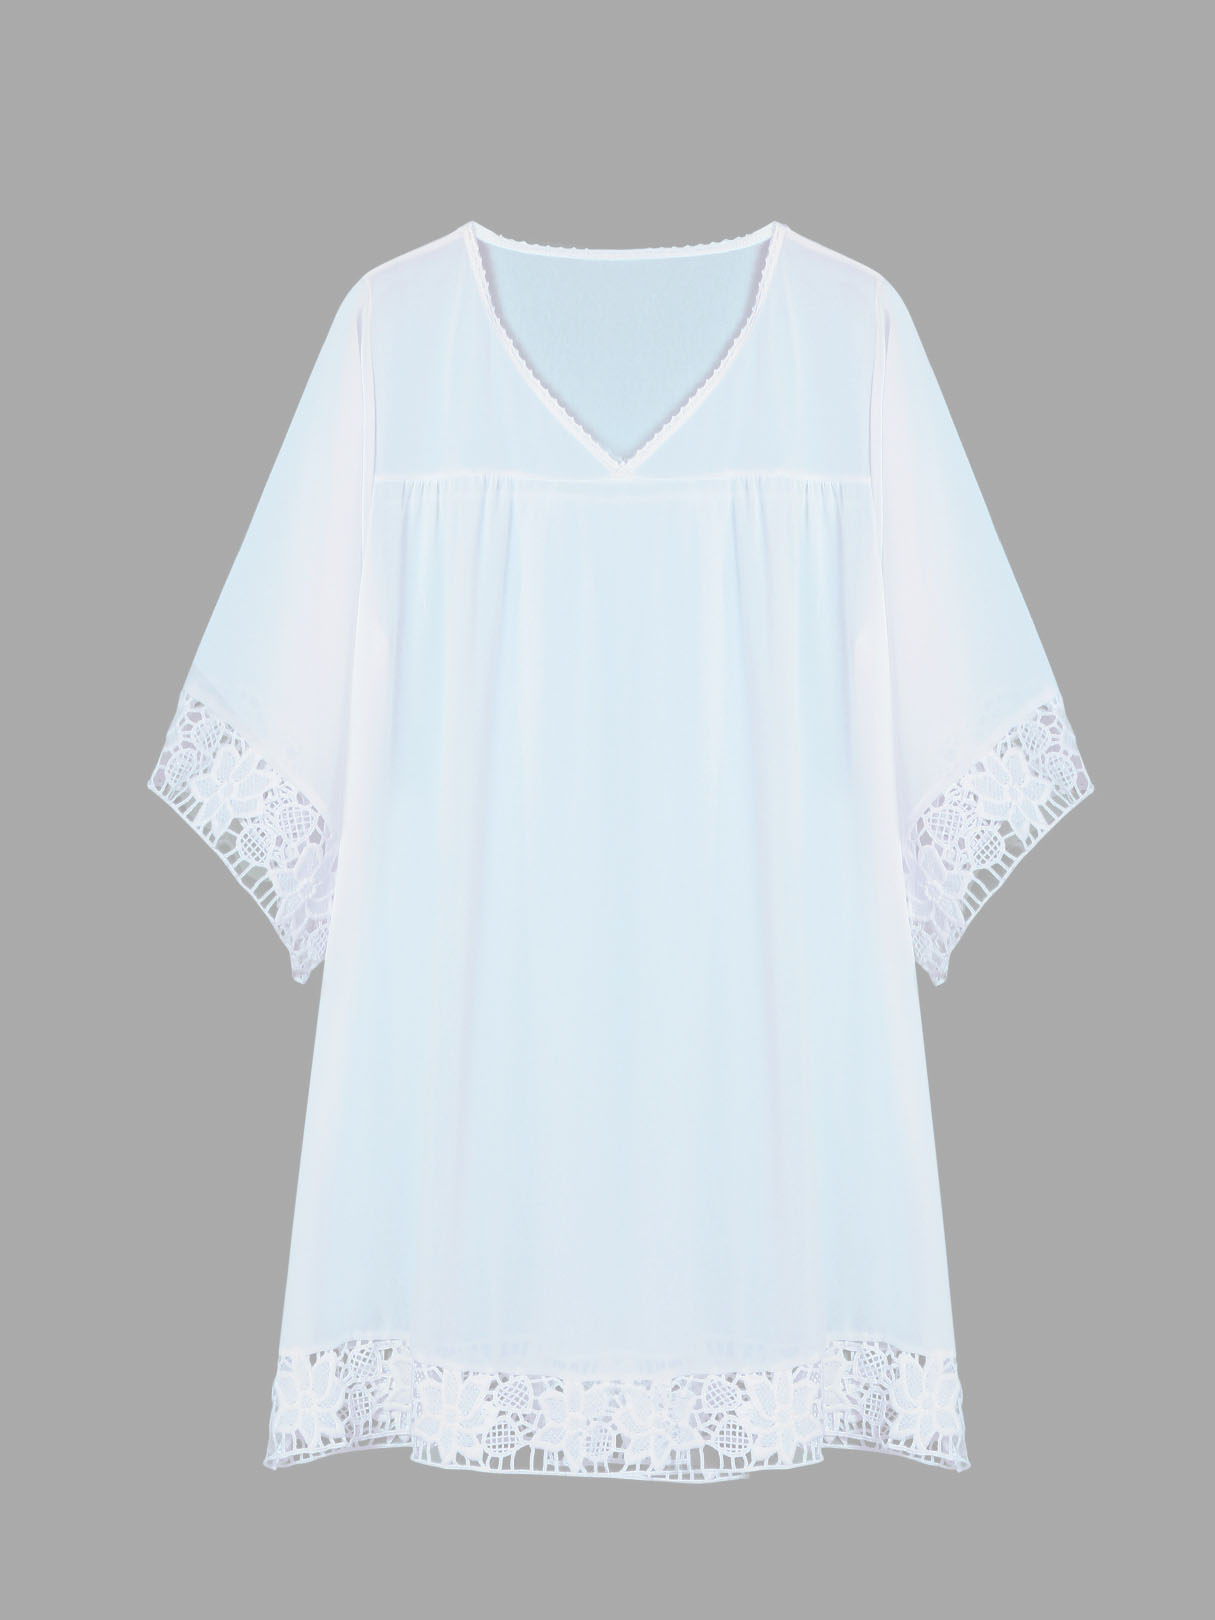 White Sheer Lace Beach Cover Up can you keep a secret